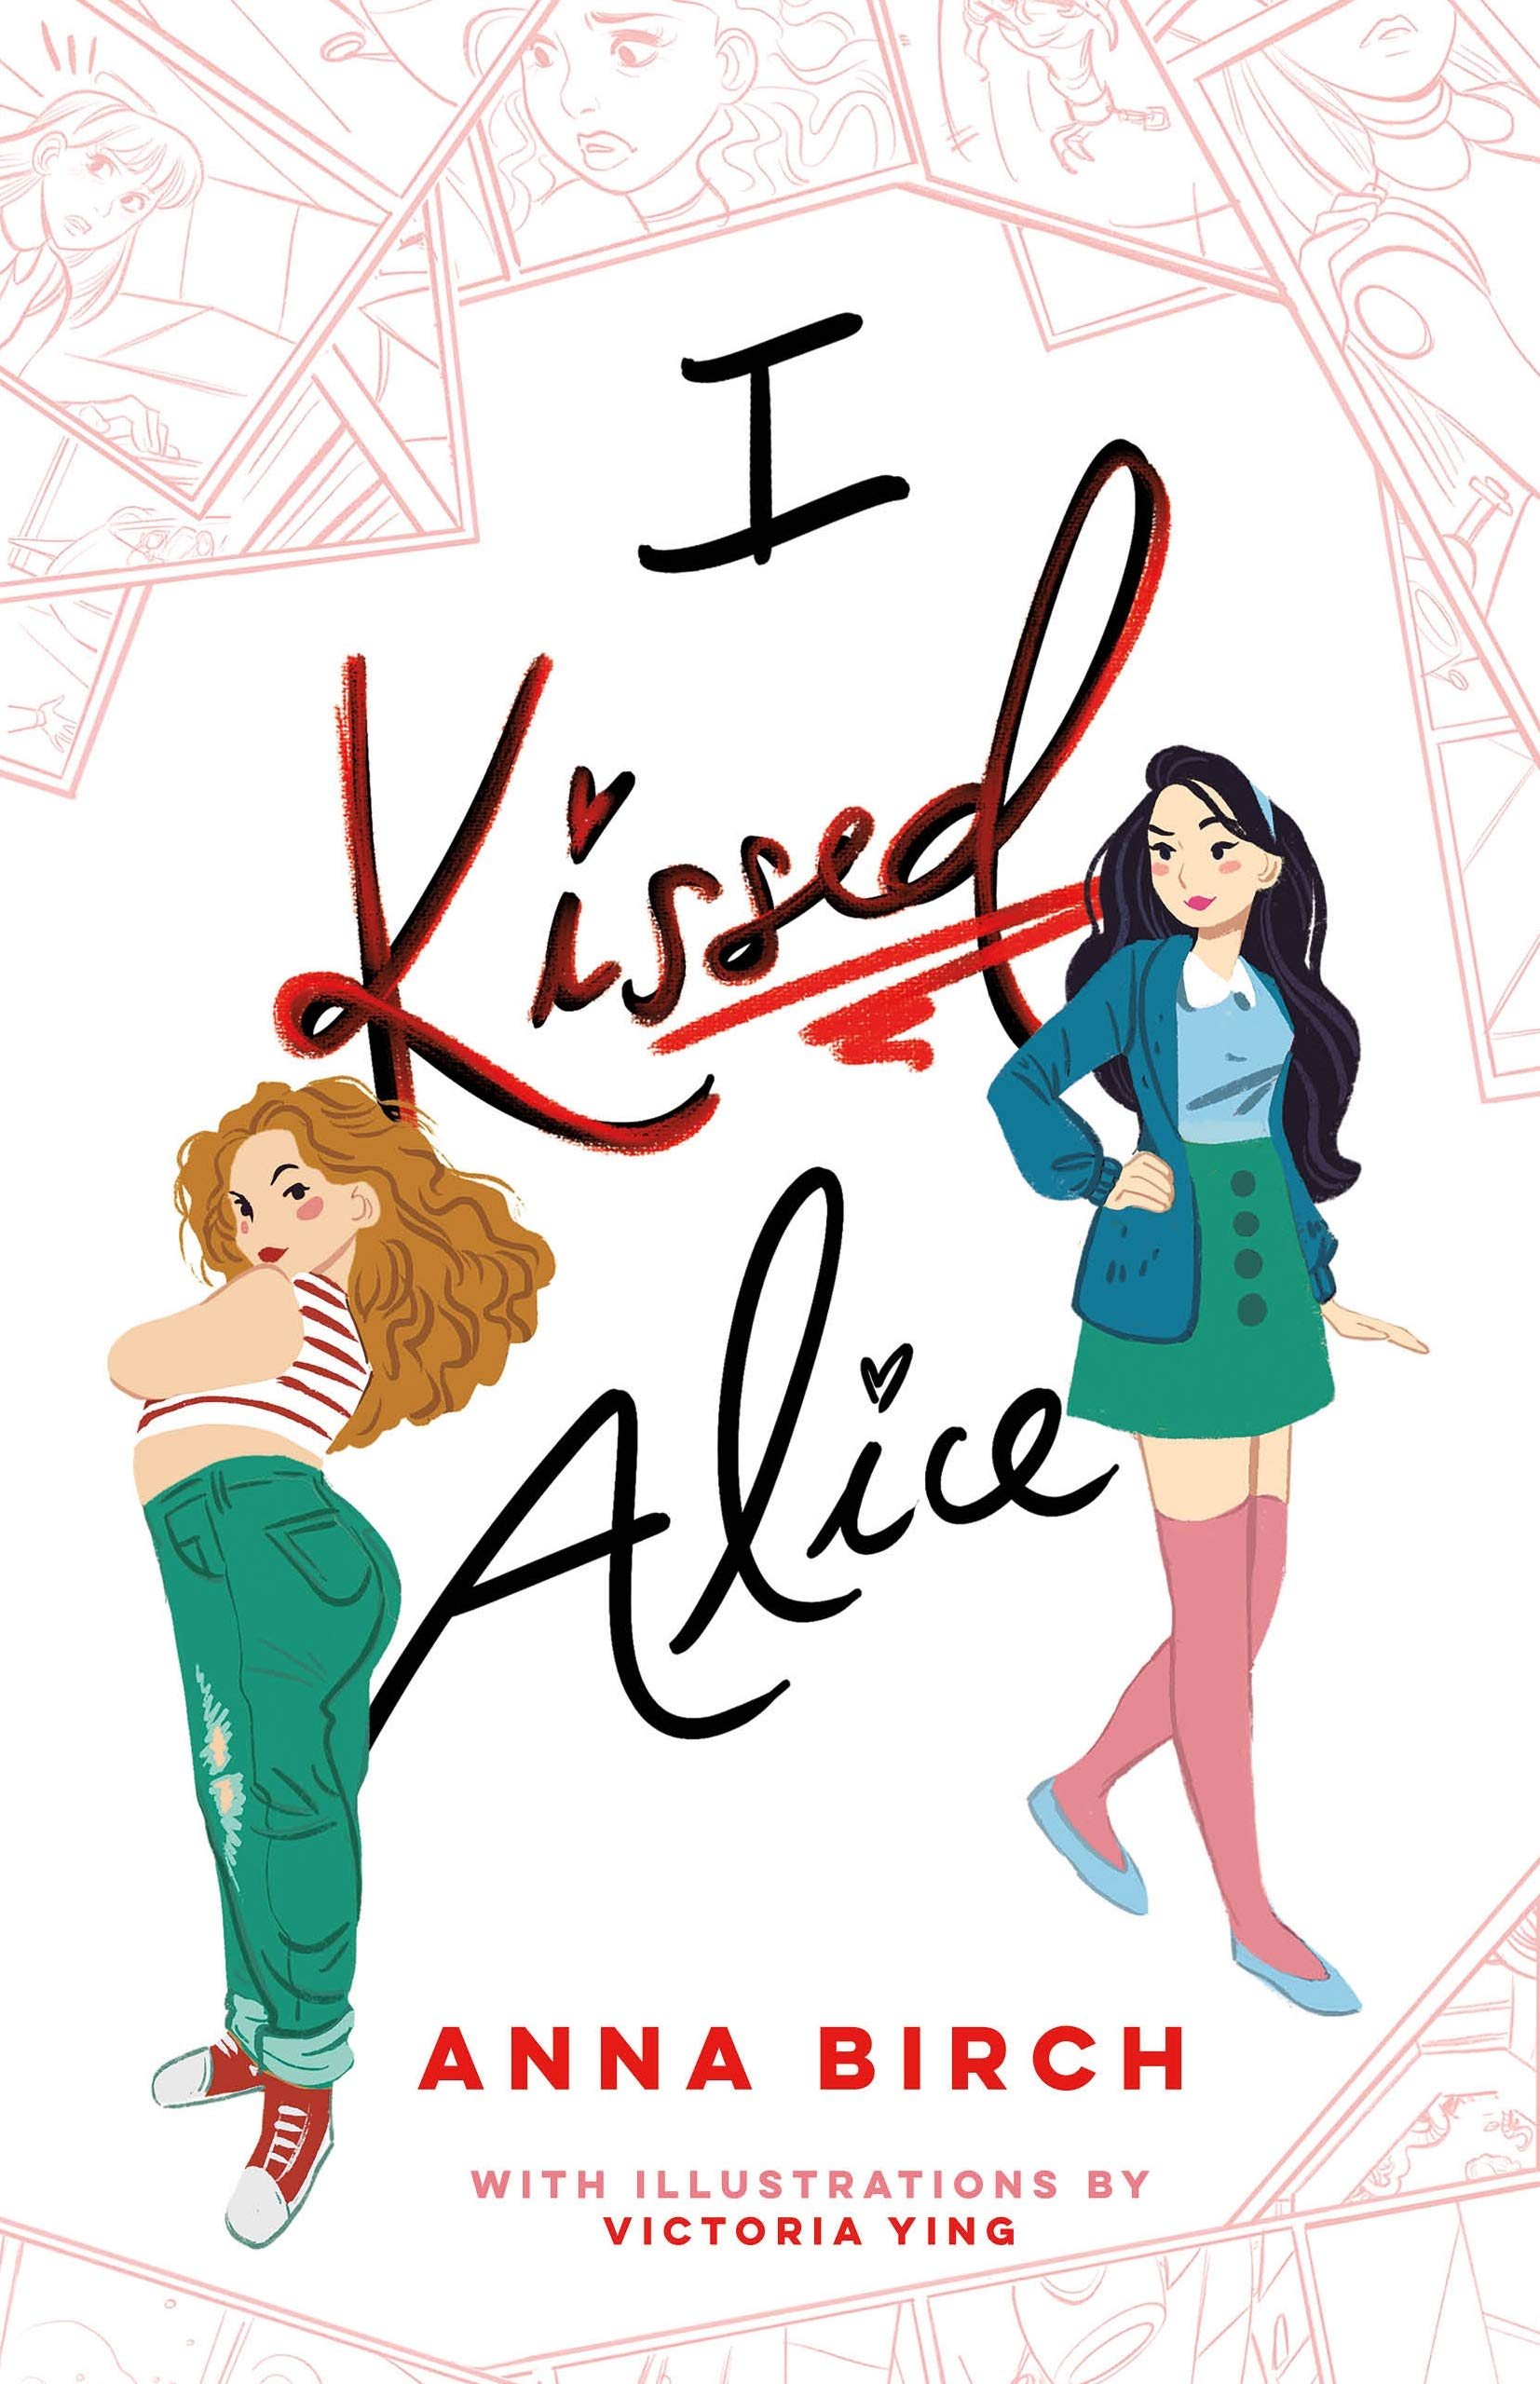 Amazon.com: I Kissed Alice (9781250219855): Birch, Anna, Ying, Victoria:  Books